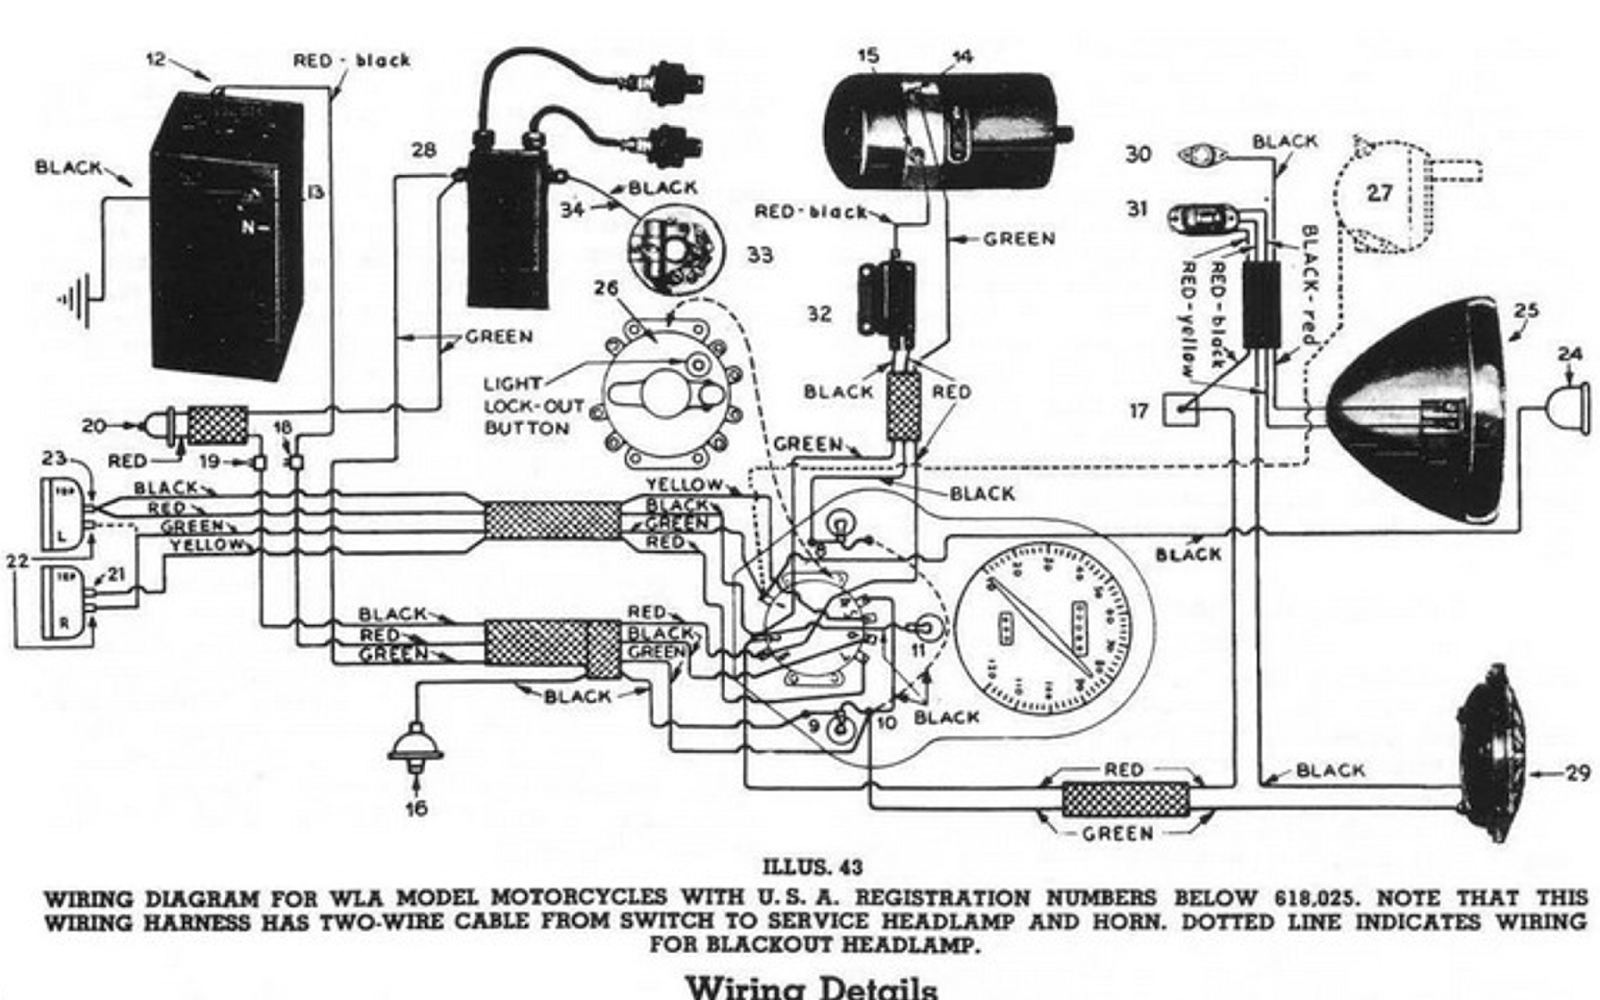 medium resolution of i have started re wiring the harley here is a wiring diagram from the wla manual for early models